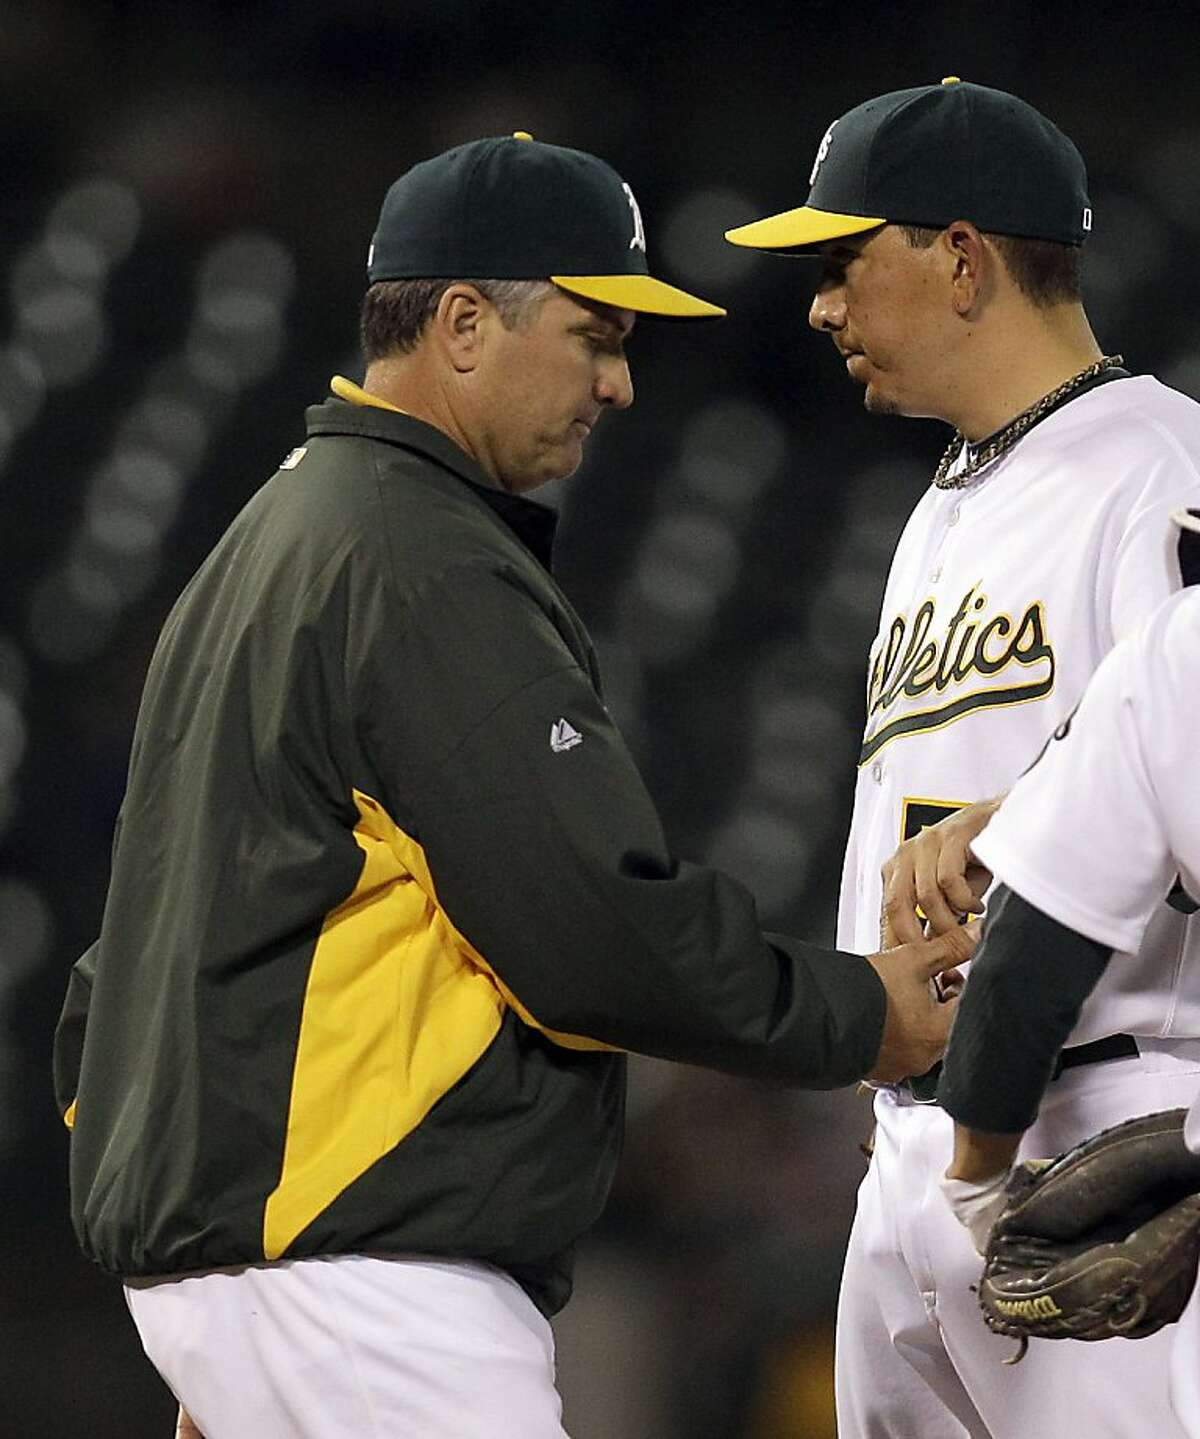 Oakland Athletics manager Bob Geren, left, takes the ball from pitcher Brian Fuentes during the ninth inning of a baseball game Tuesday, May 3, 2011, in Oakland, Calif.